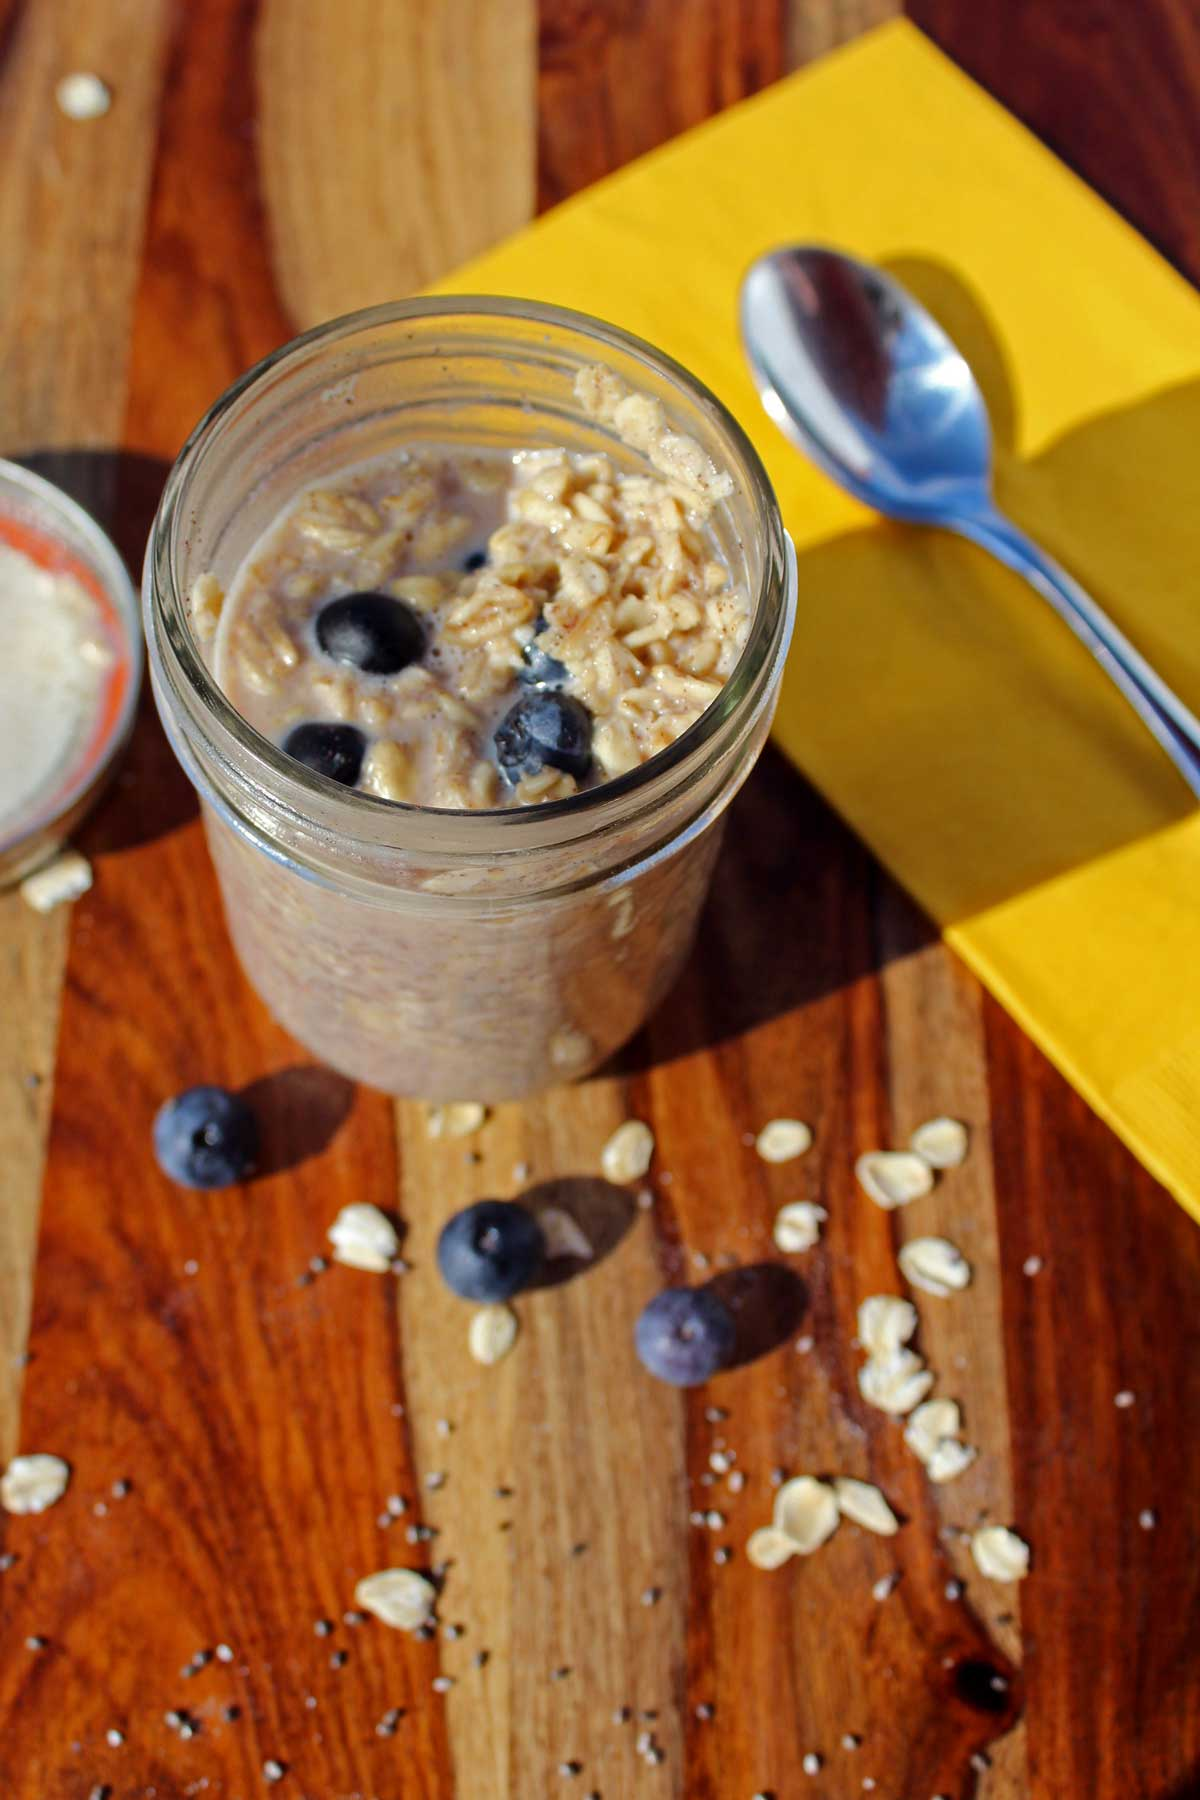 With just a few minutes of meal prep, overnight oats are a quick, healthy and delicious way to enjoy breakfast on the go all week long! Start the day right!